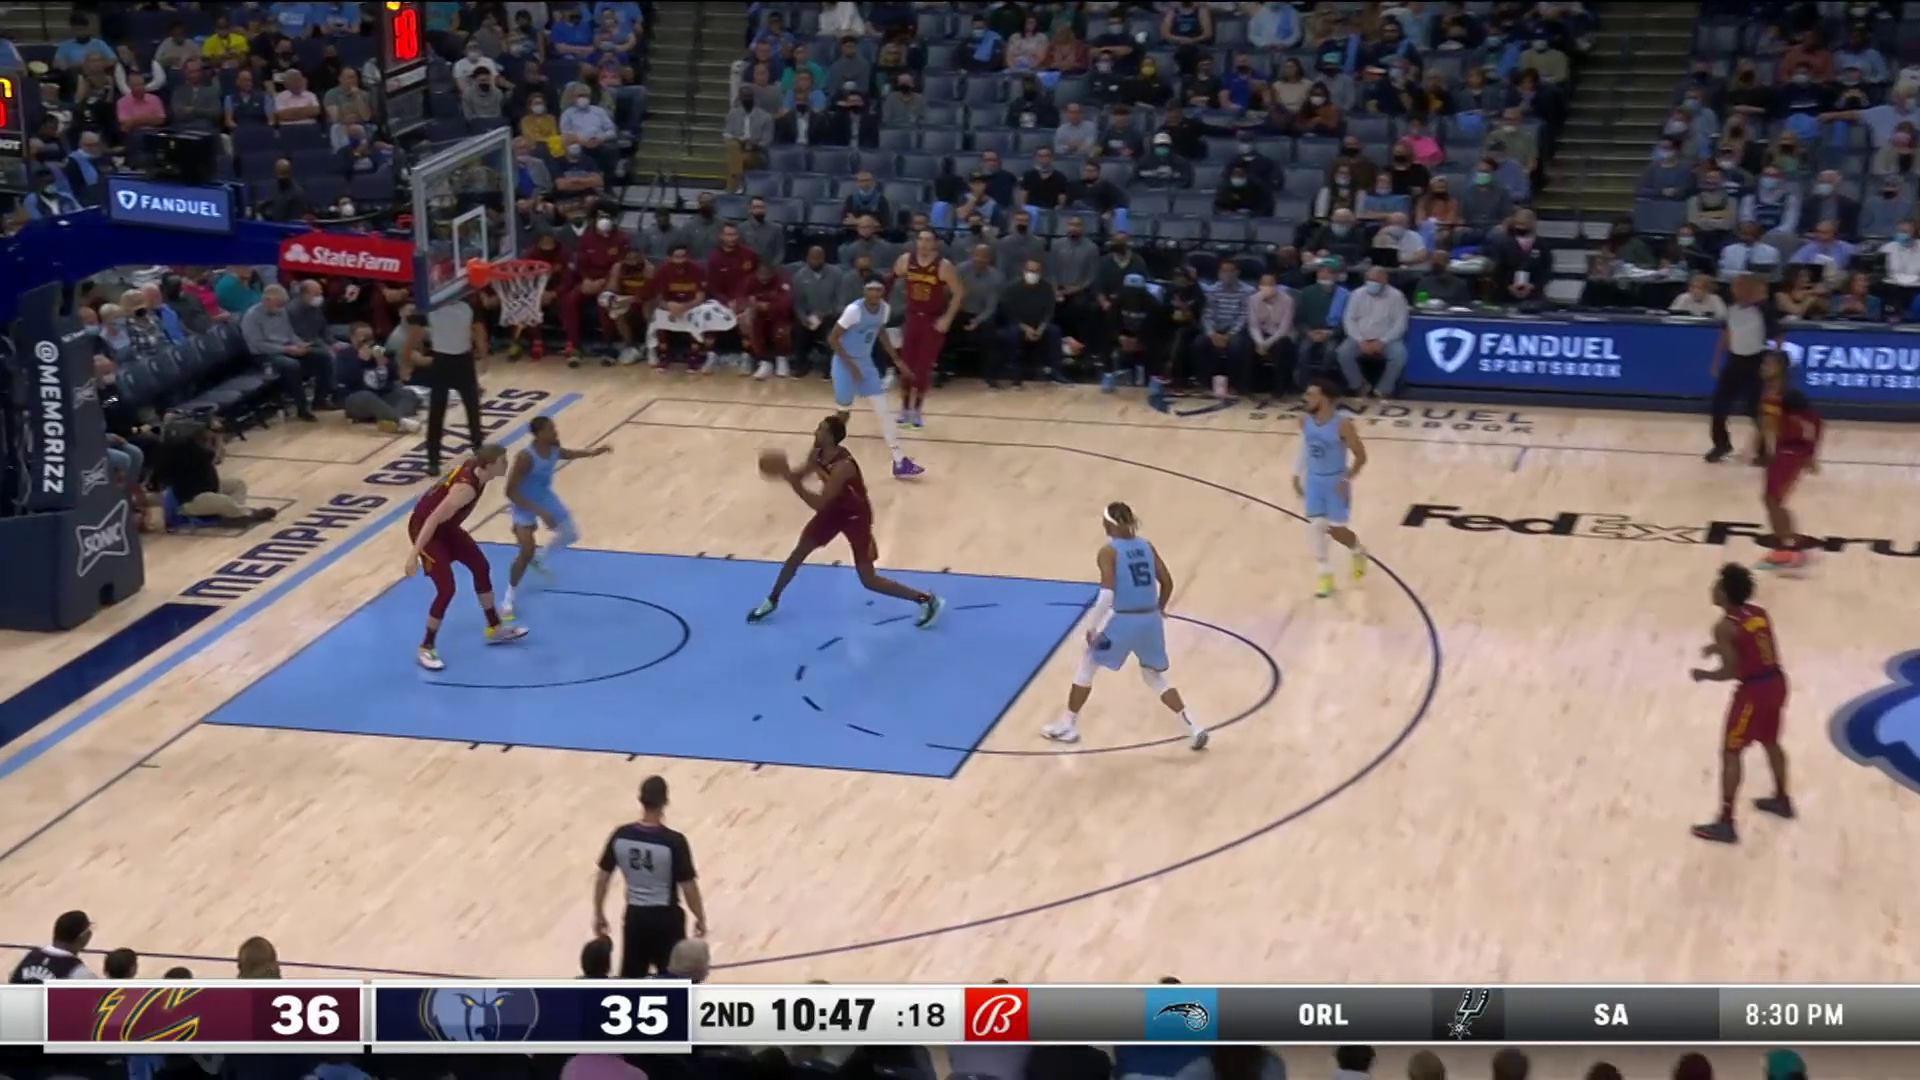 Mobley Gets the Block, Rewarded with a Dunk on the Other End